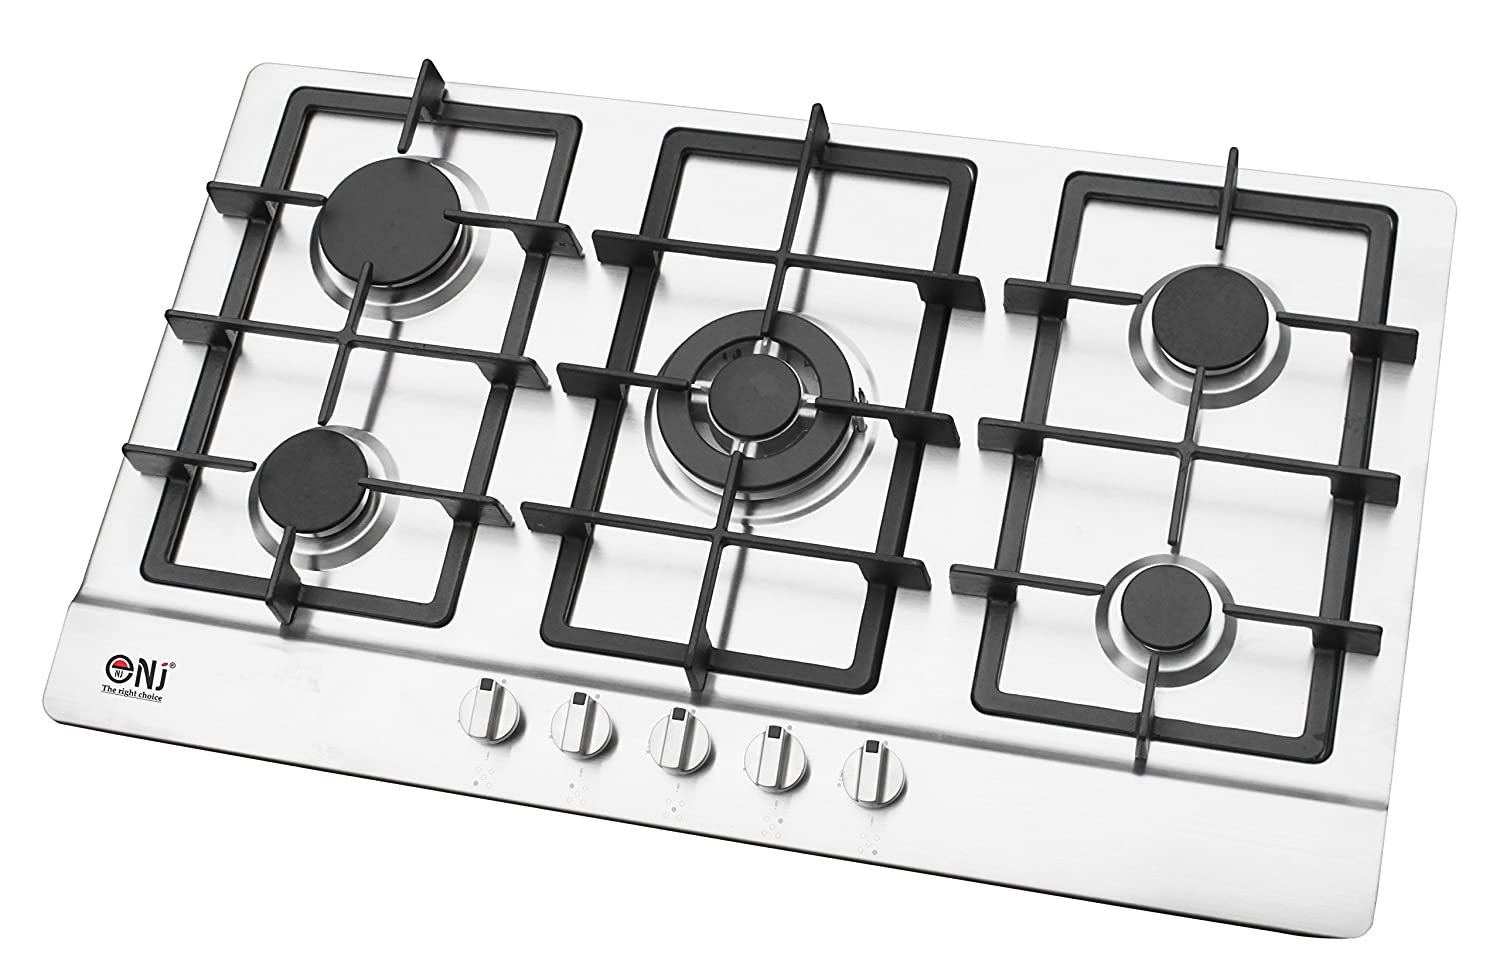 NJ-903S Built-in Gas Hob 86cm 5 burners Stainless Steel Surface LPG Front Control Fontron Ltd